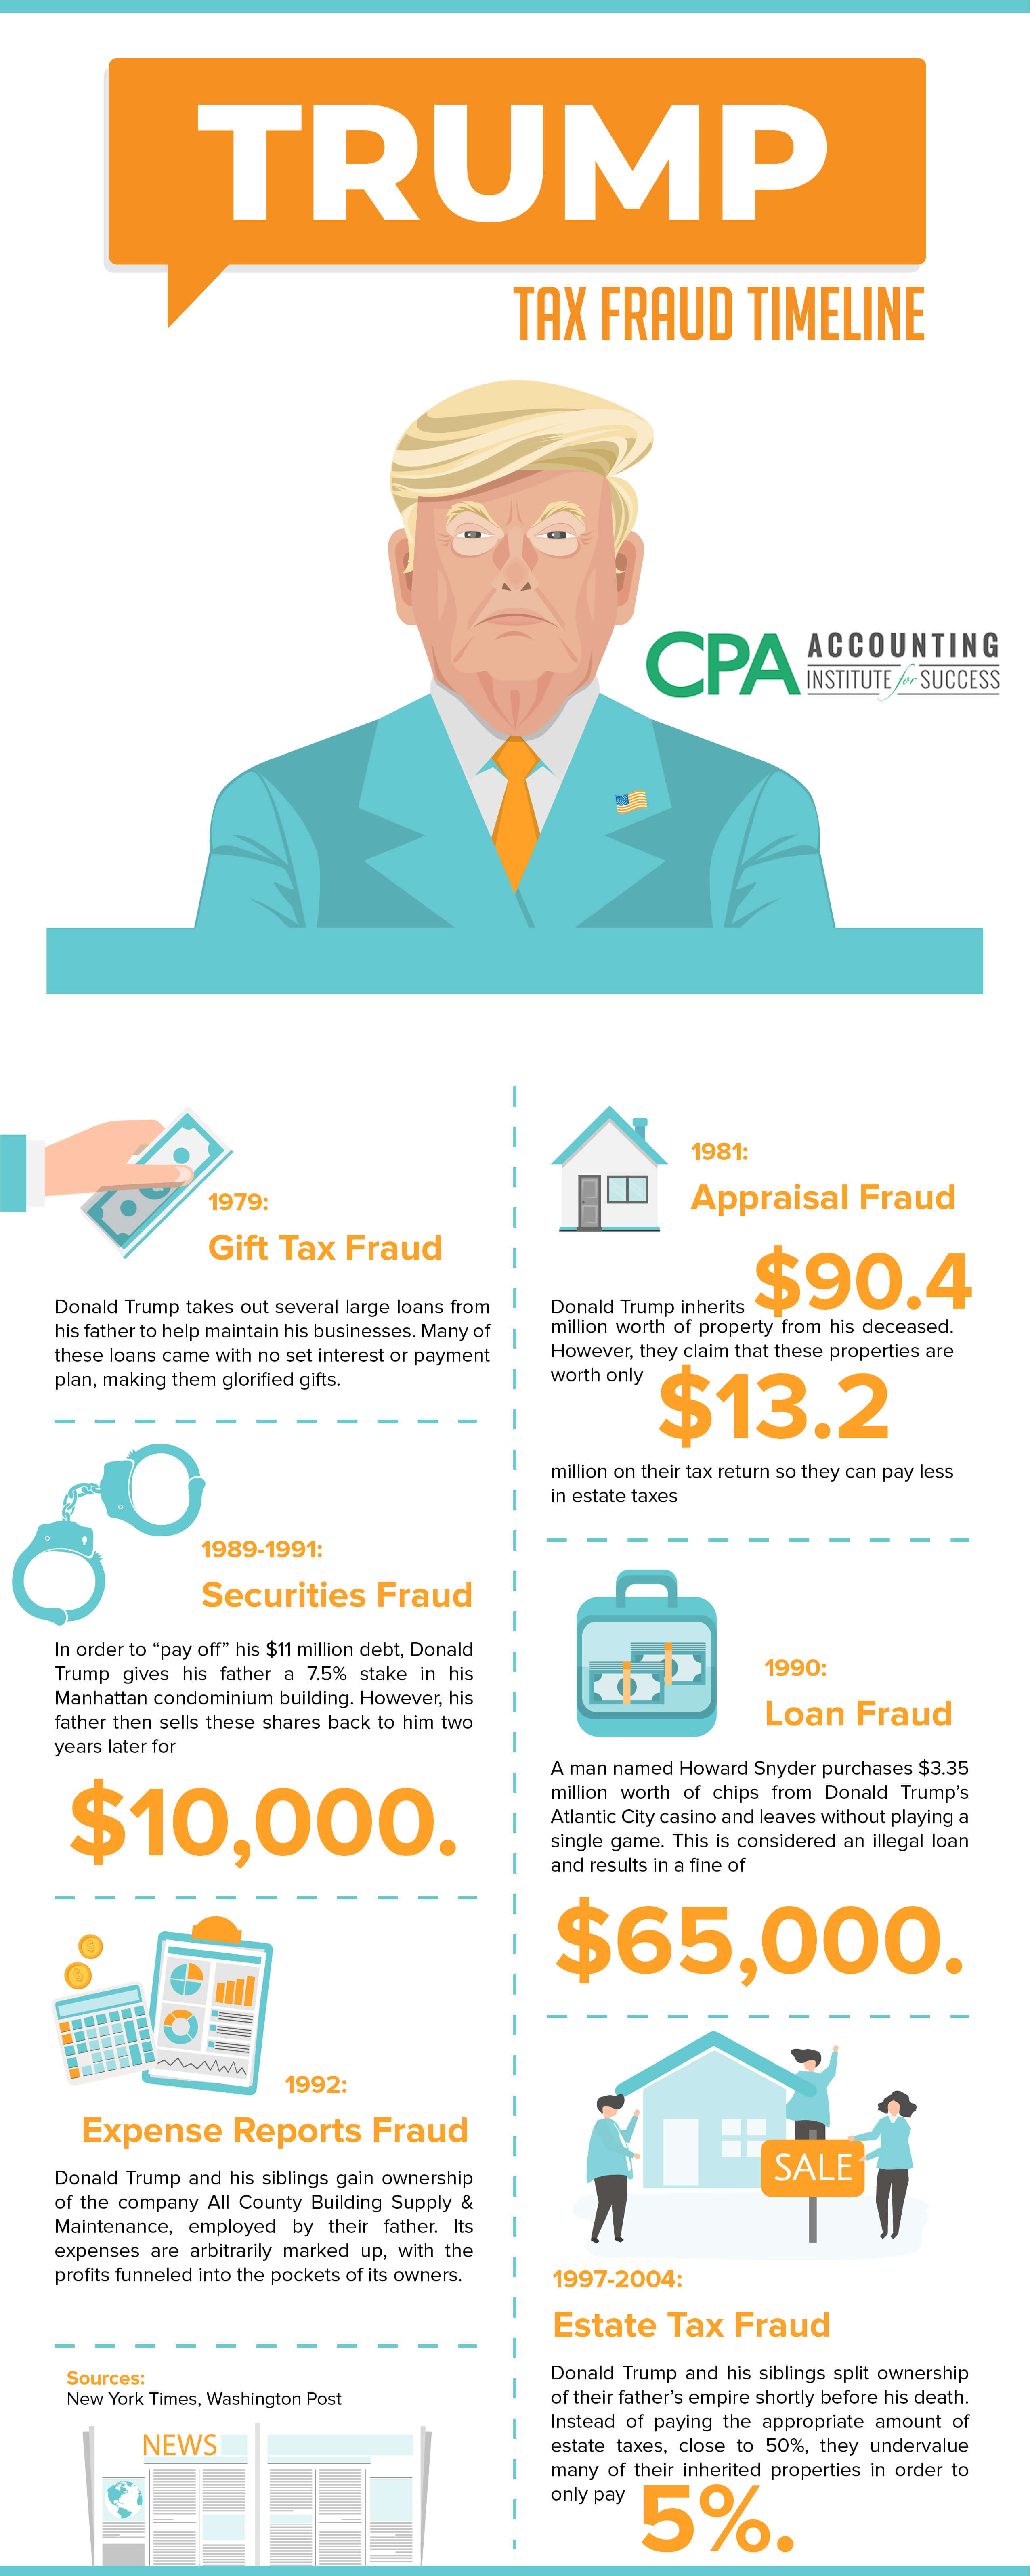 Trump-Tax-Fraud-Timeline-Infographic1.jp